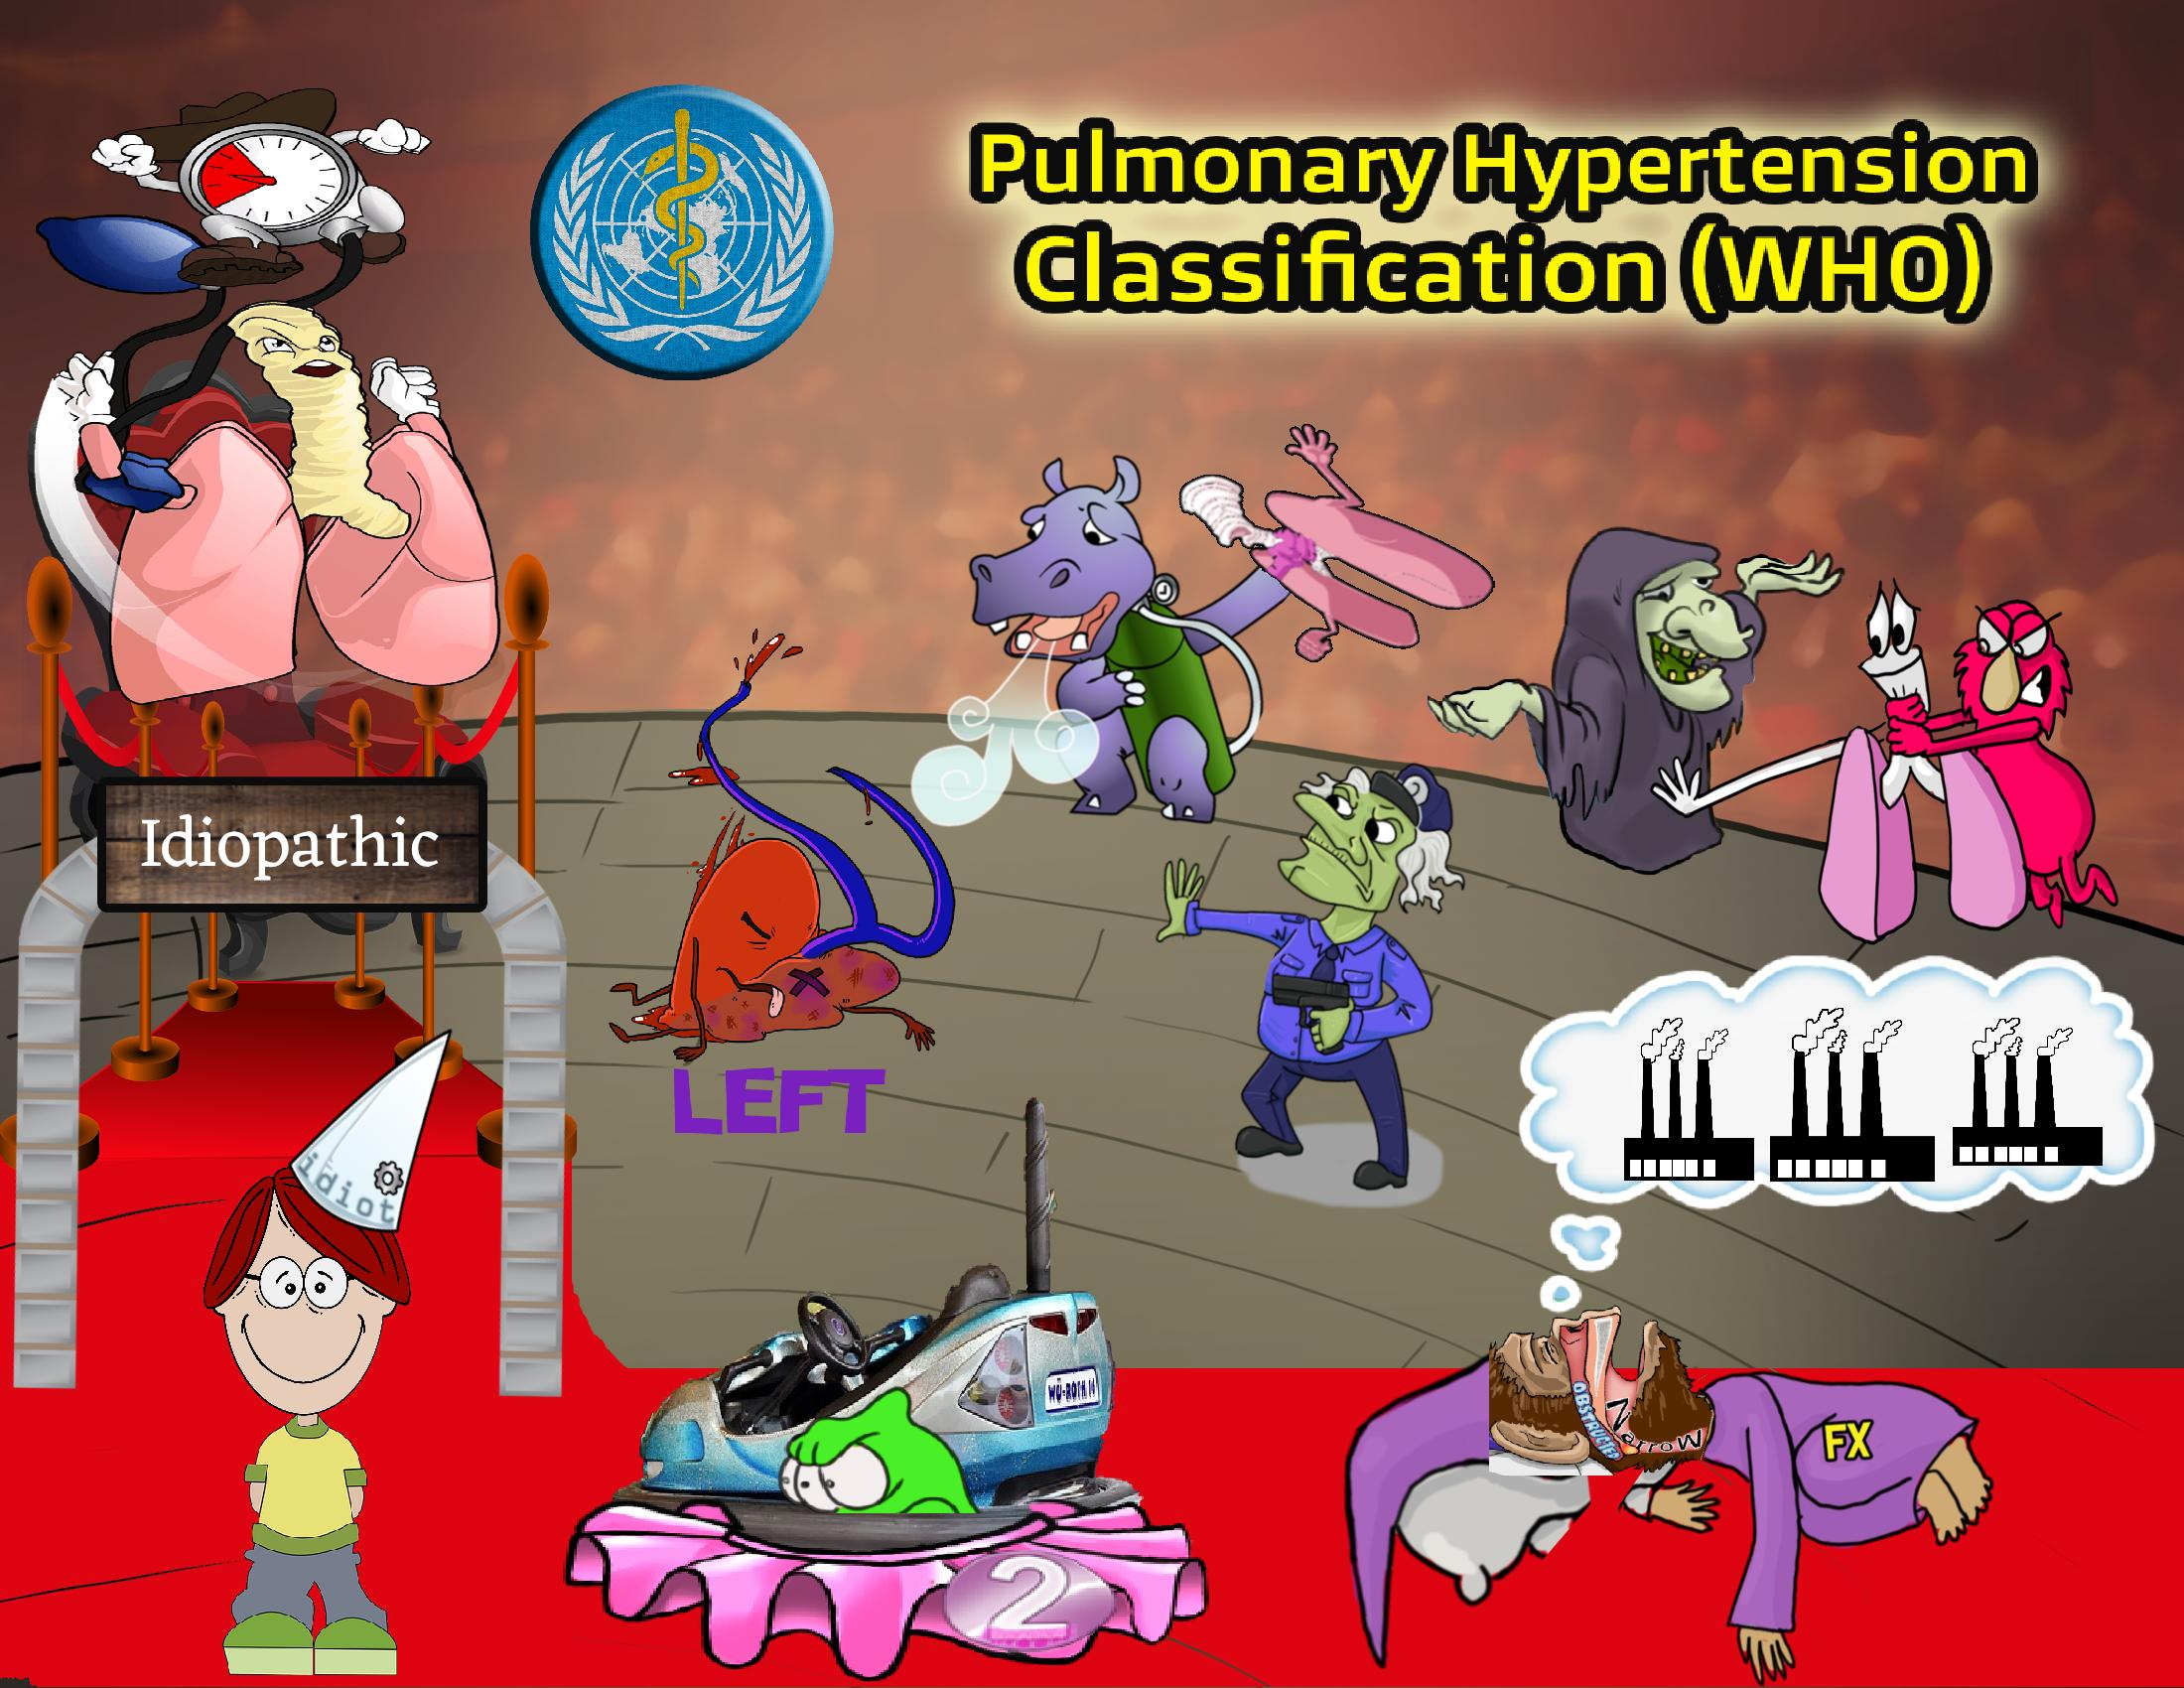 Pulmonary Hypertension Classification (WHO)